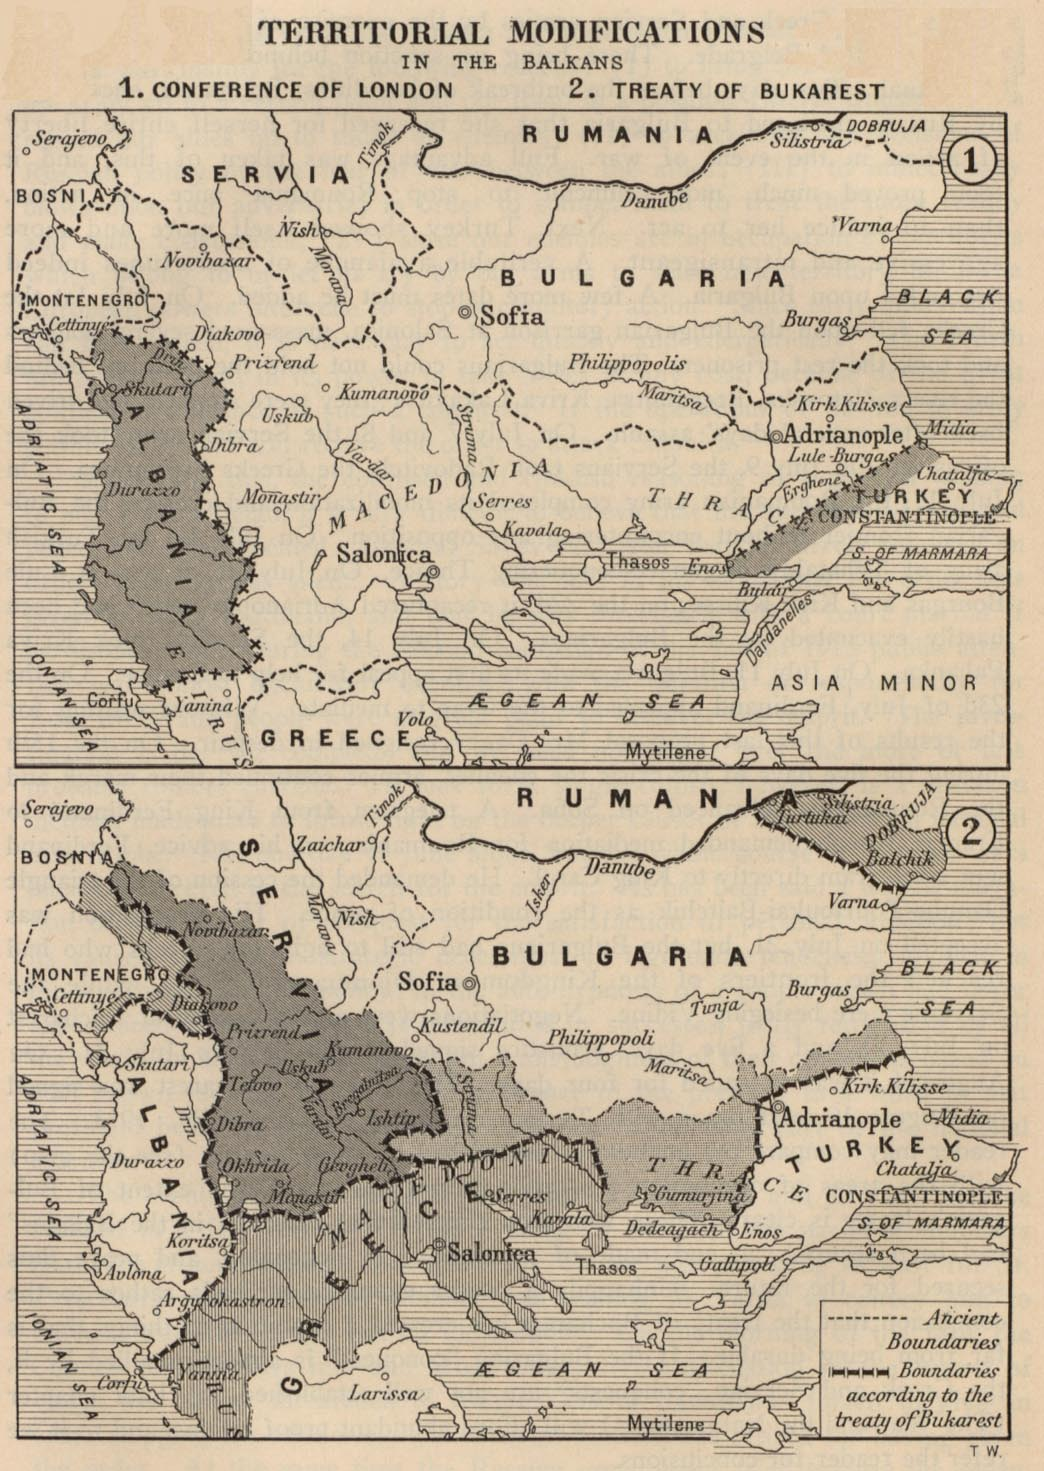 The balkans historical maps perry castaeda map collection ut territorial modifications in the balkans conference of london may 1913 and treaty of bukarest august 1913 281k map sciox Images